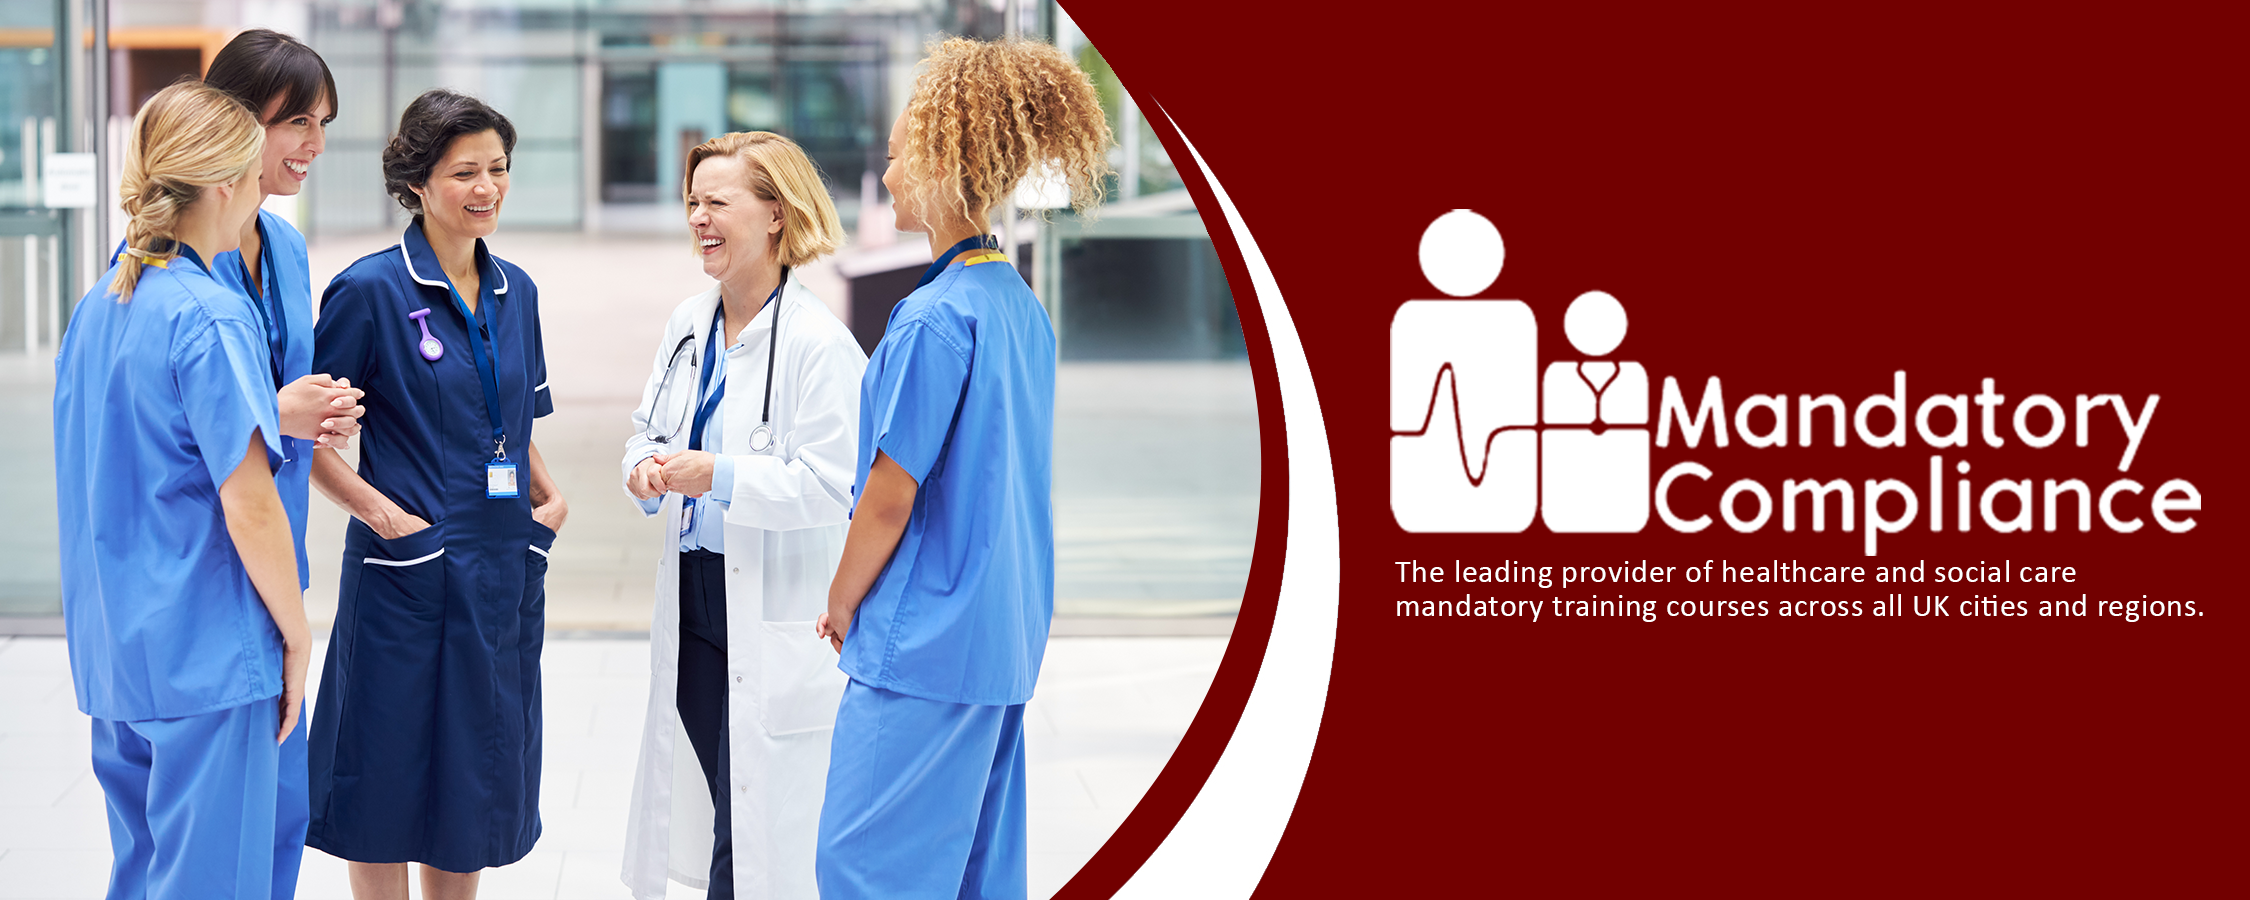 Chaperone Training for Health and Care - E-Learning Courses - Mandatory Compliance UK -